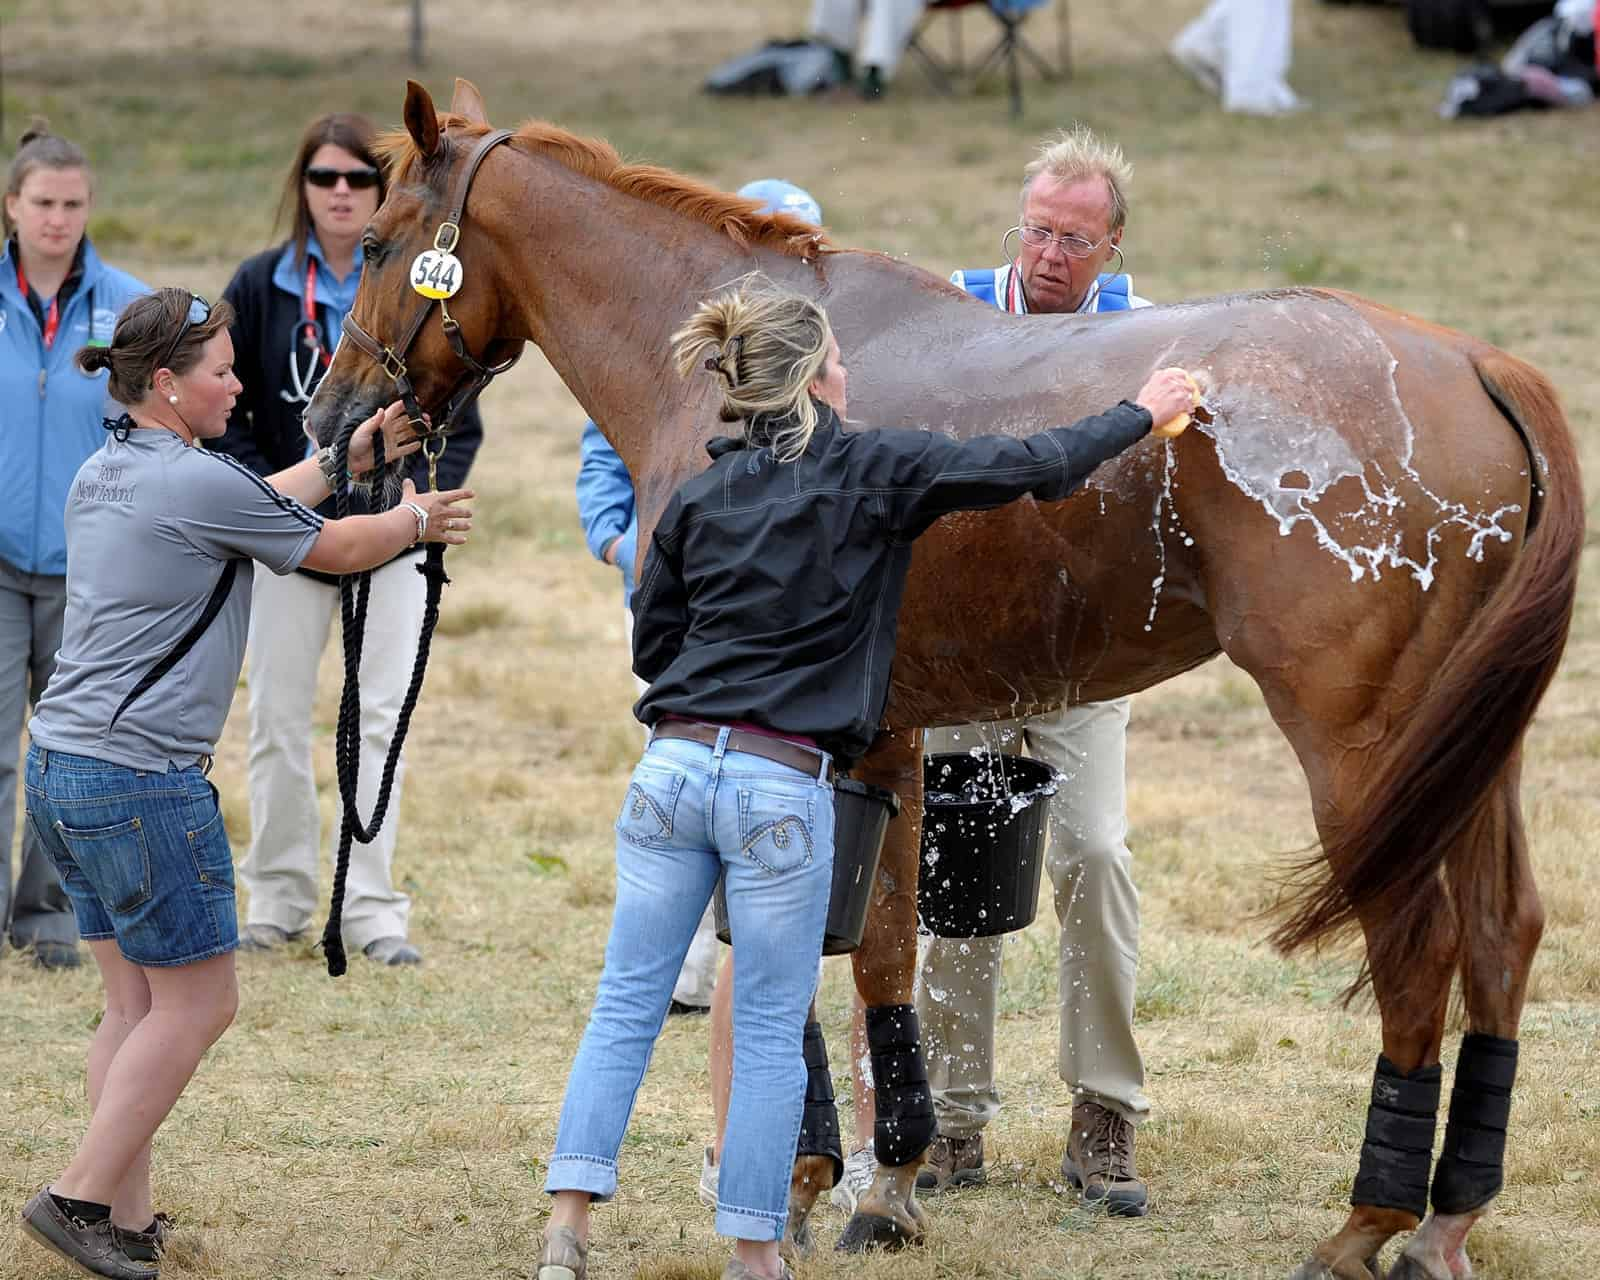 Managing Dehydration, Exhaustion in Horses